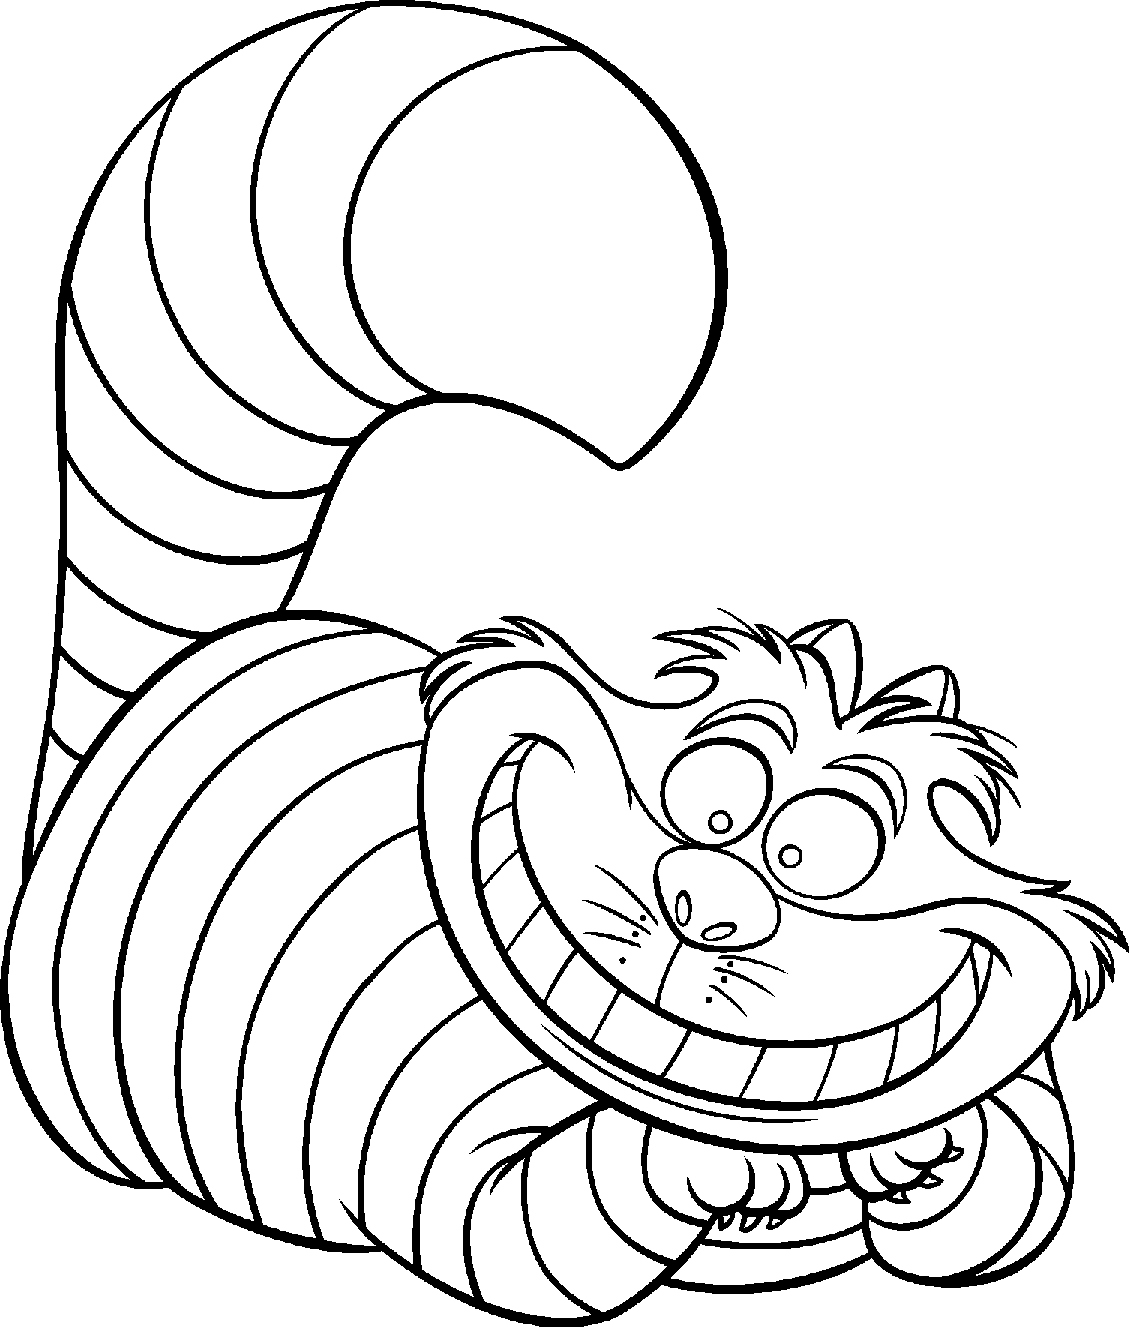 Free Printable Funny Coloring Pages For Kids | free coloring pages funny